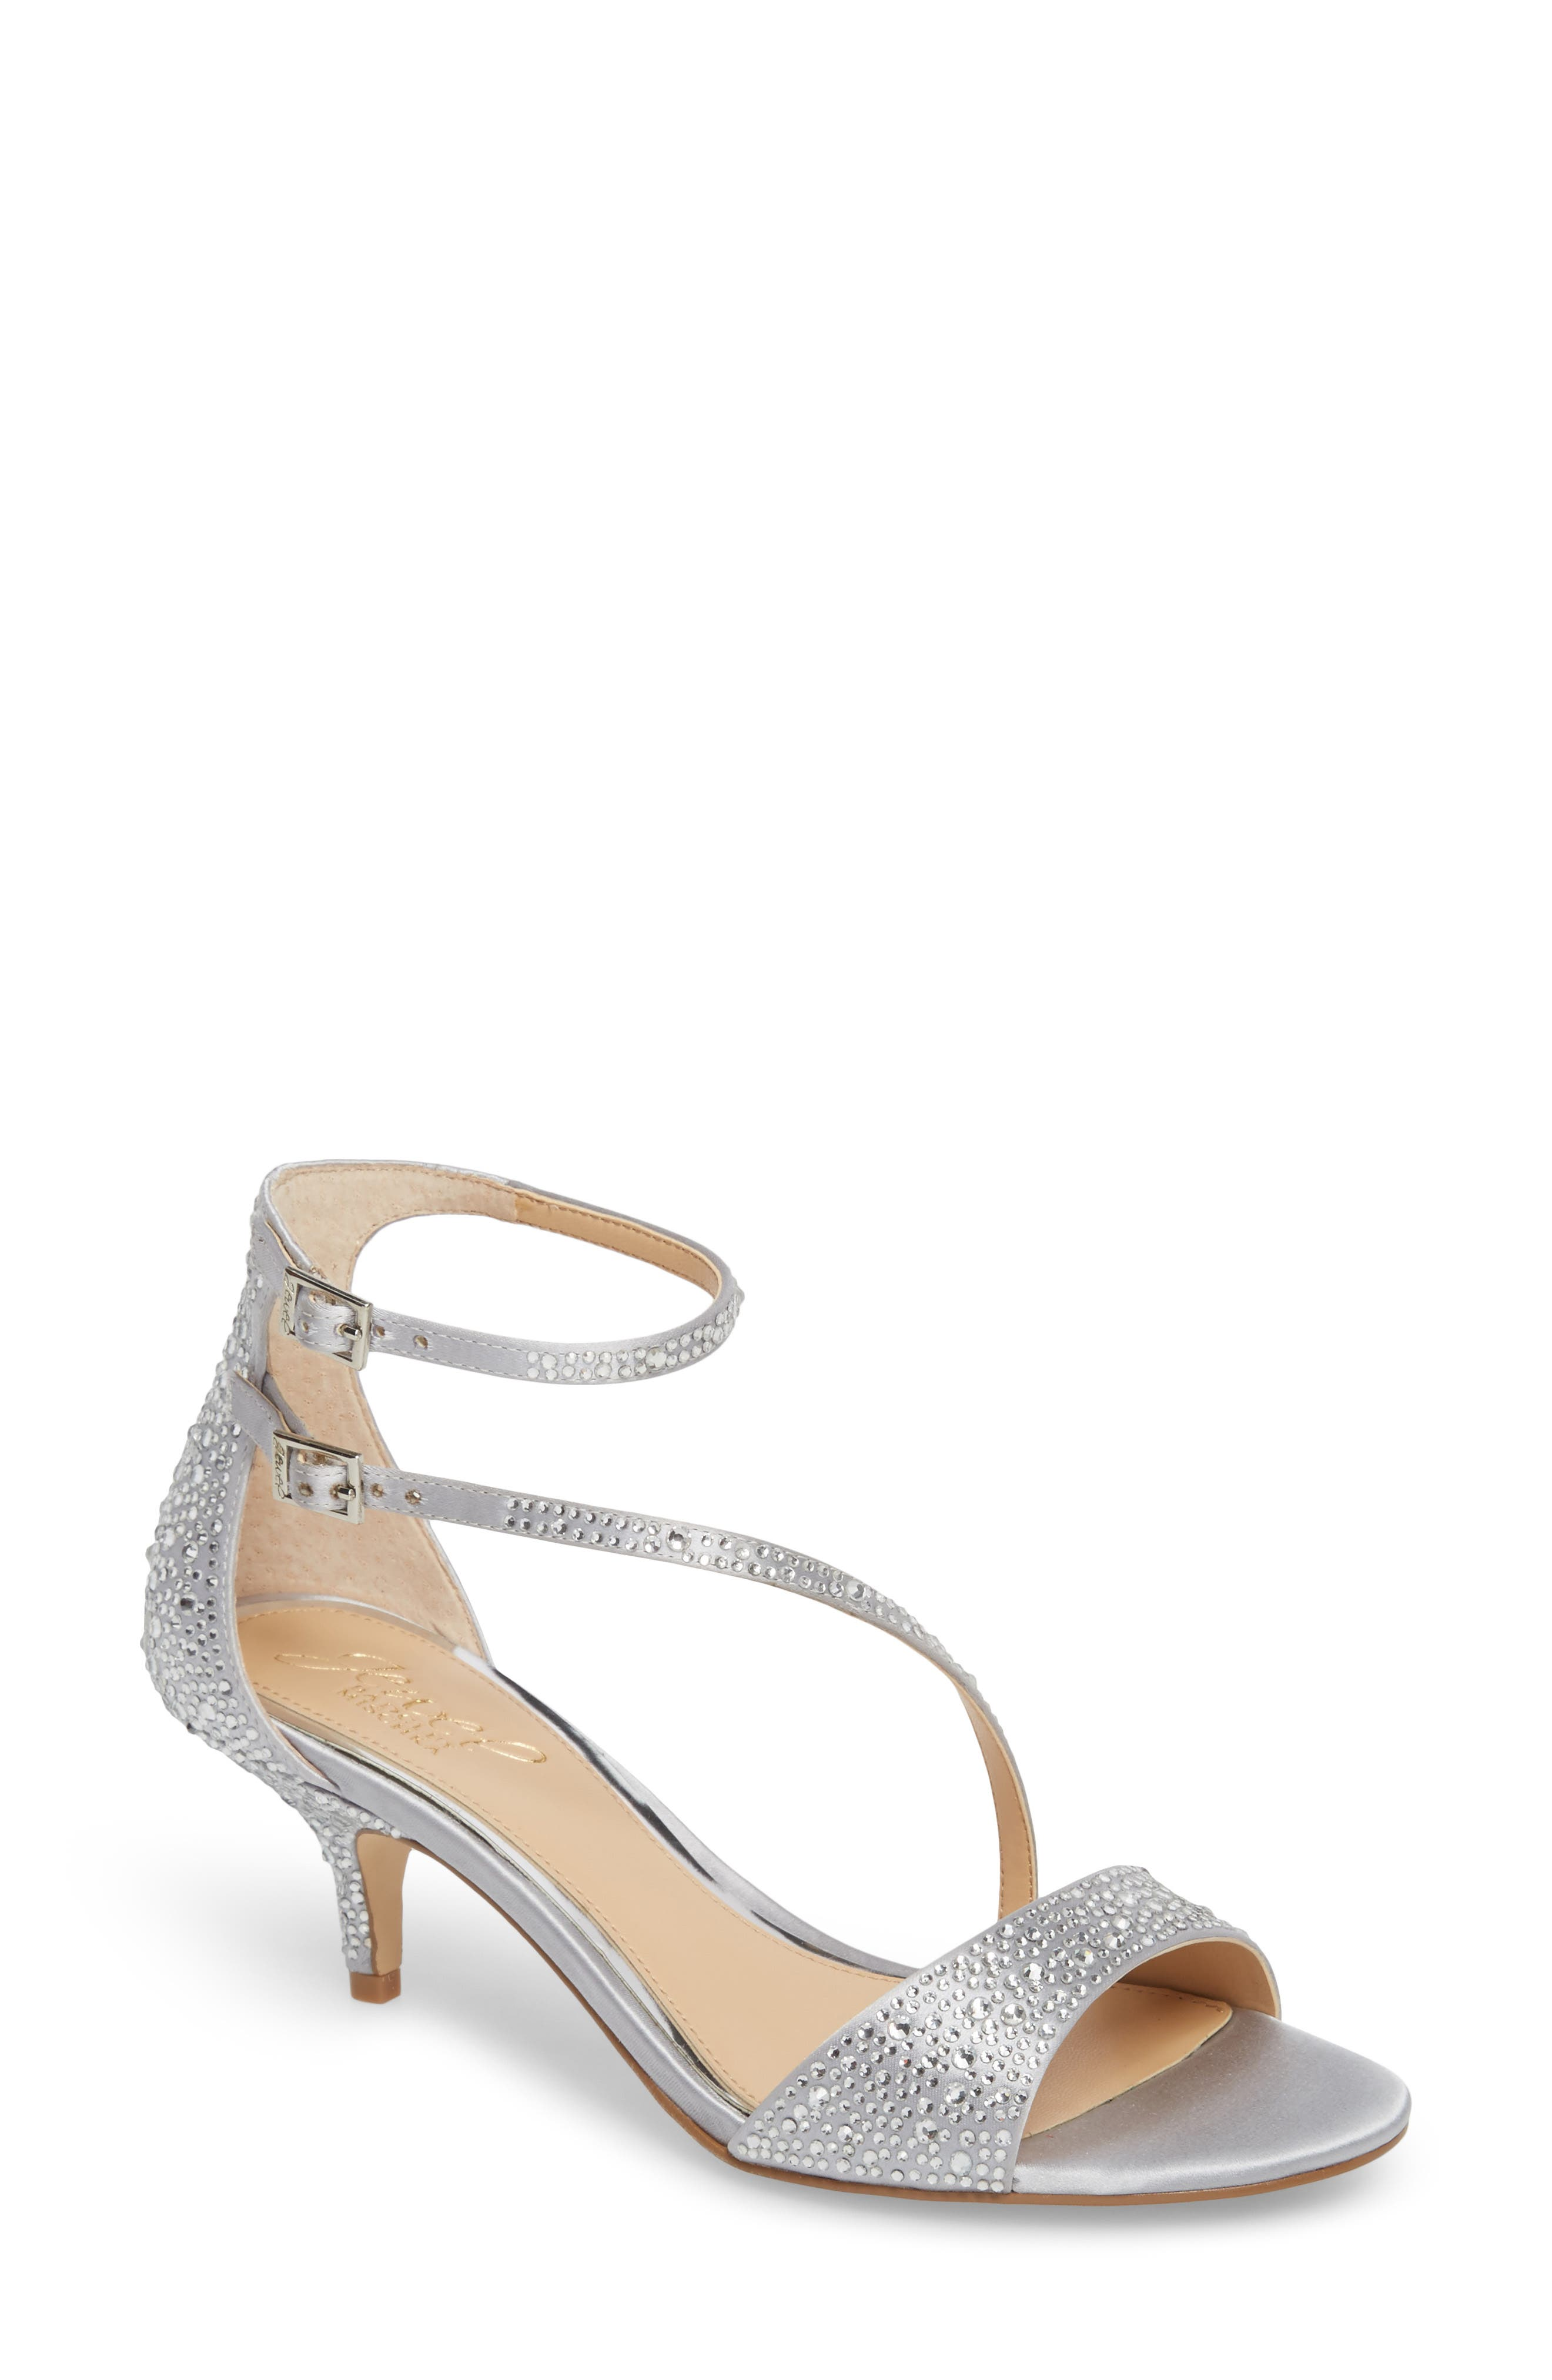 Tangerine Crystal Embellished Sandal,                             Main thumbnail 1, color,                             Silver Satin